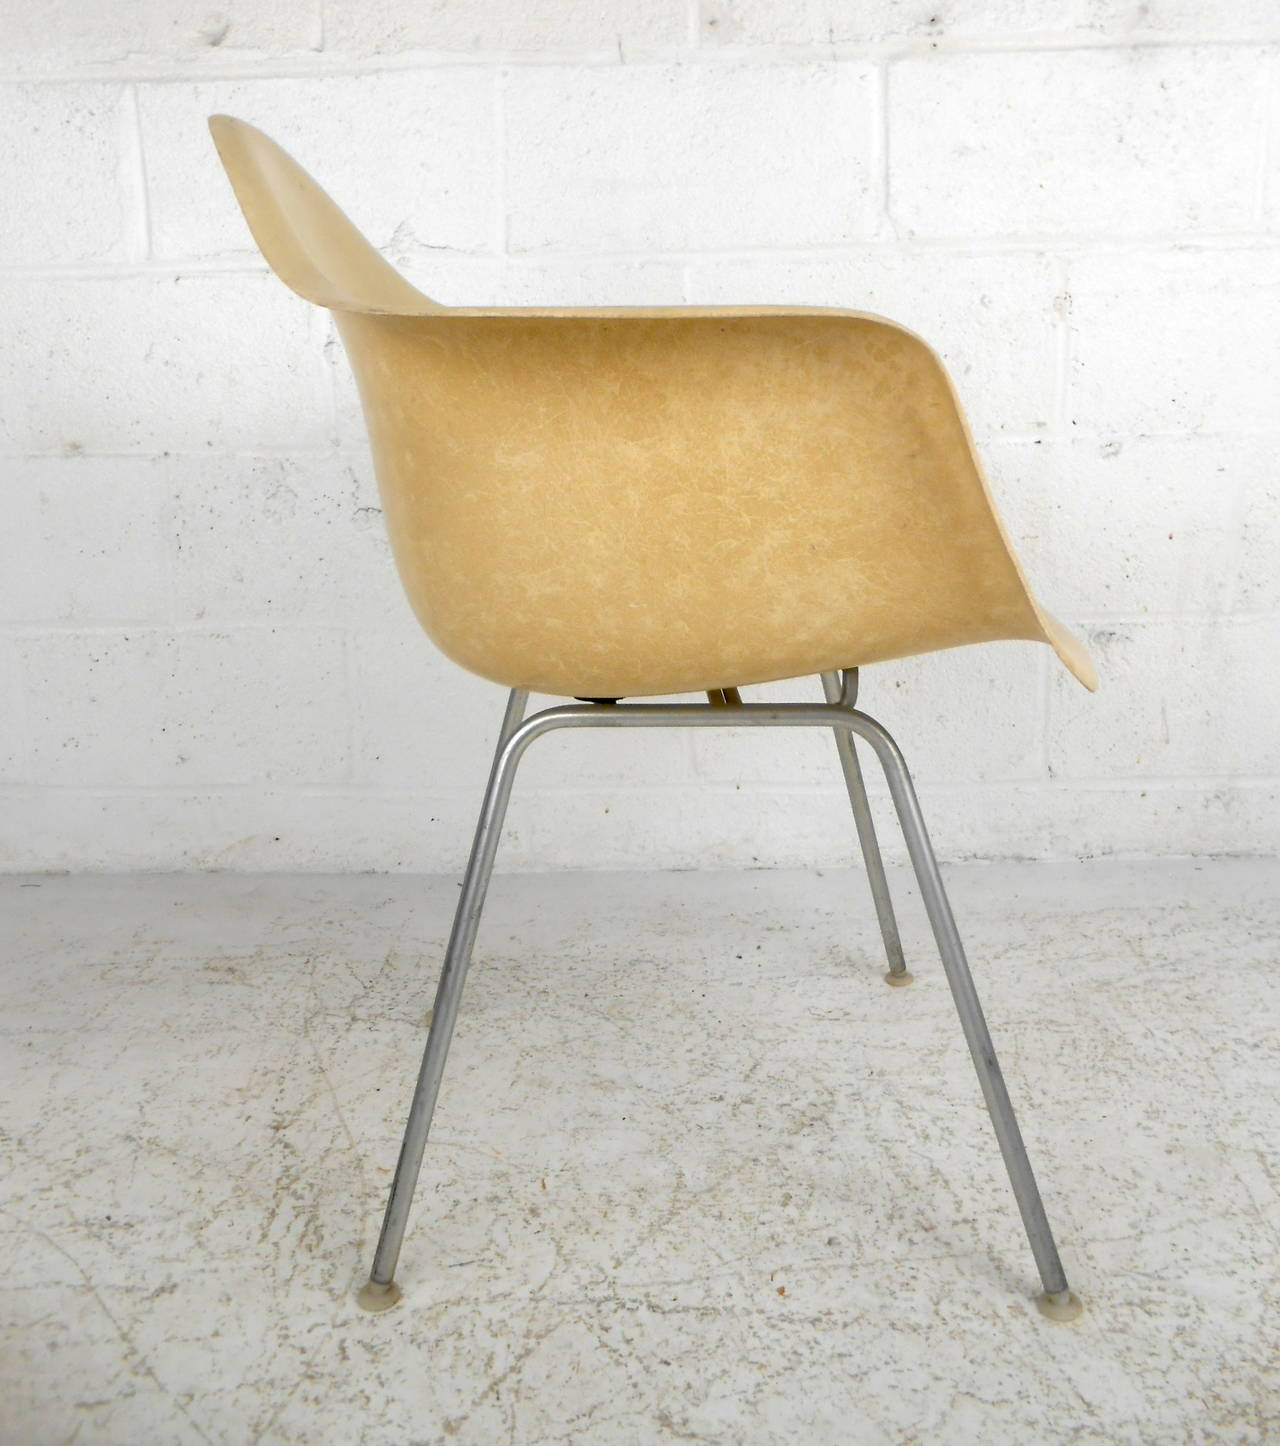 Mid Century Modern Fiberglass Shell Chair By Eames For Herman Miller 3